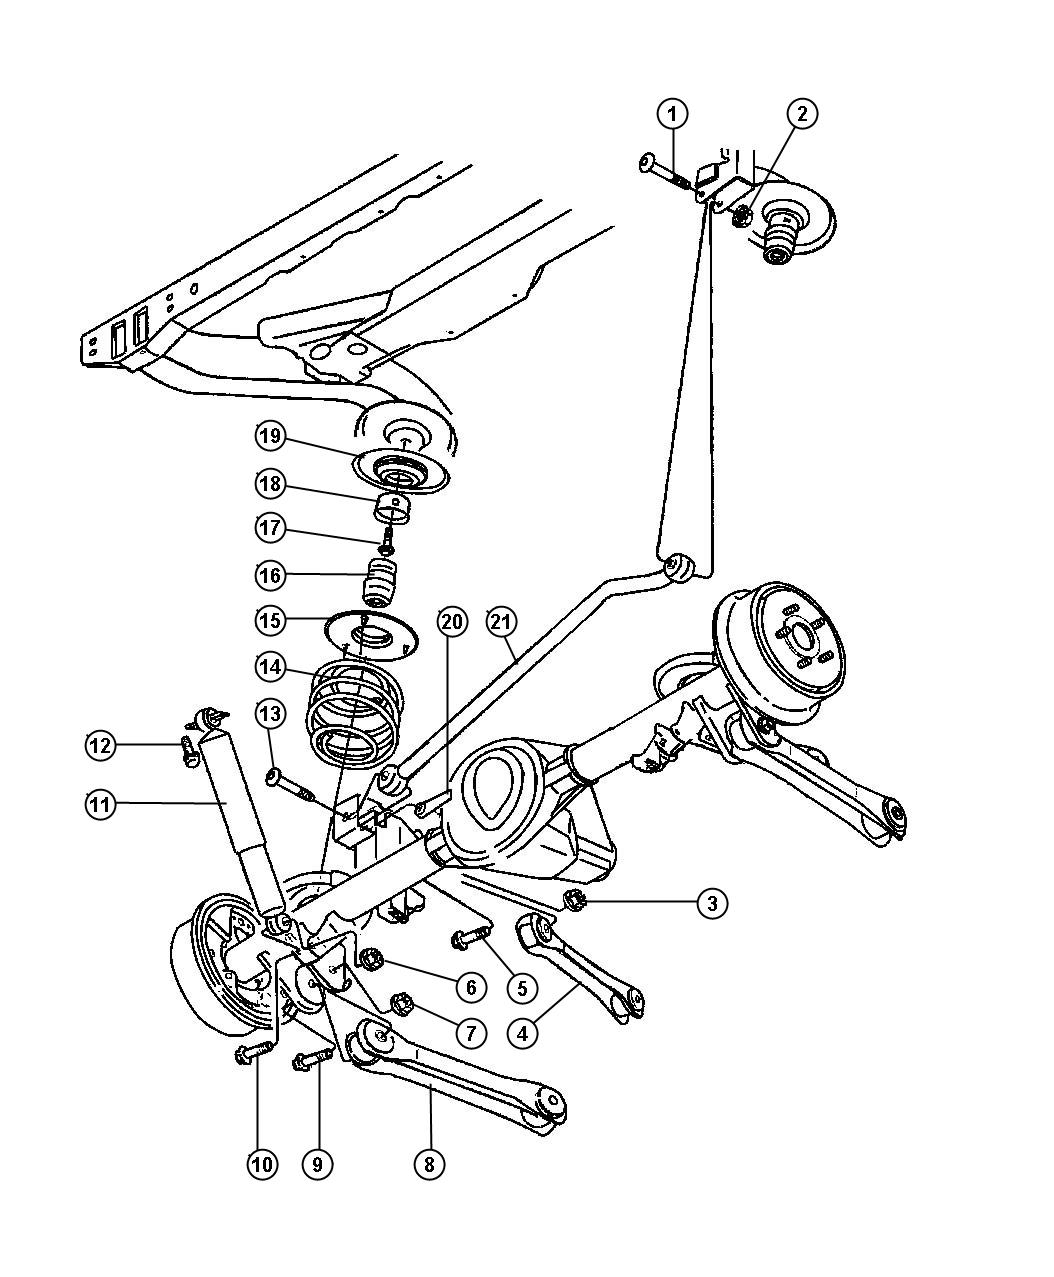 jeep wrangler tie rod diagram